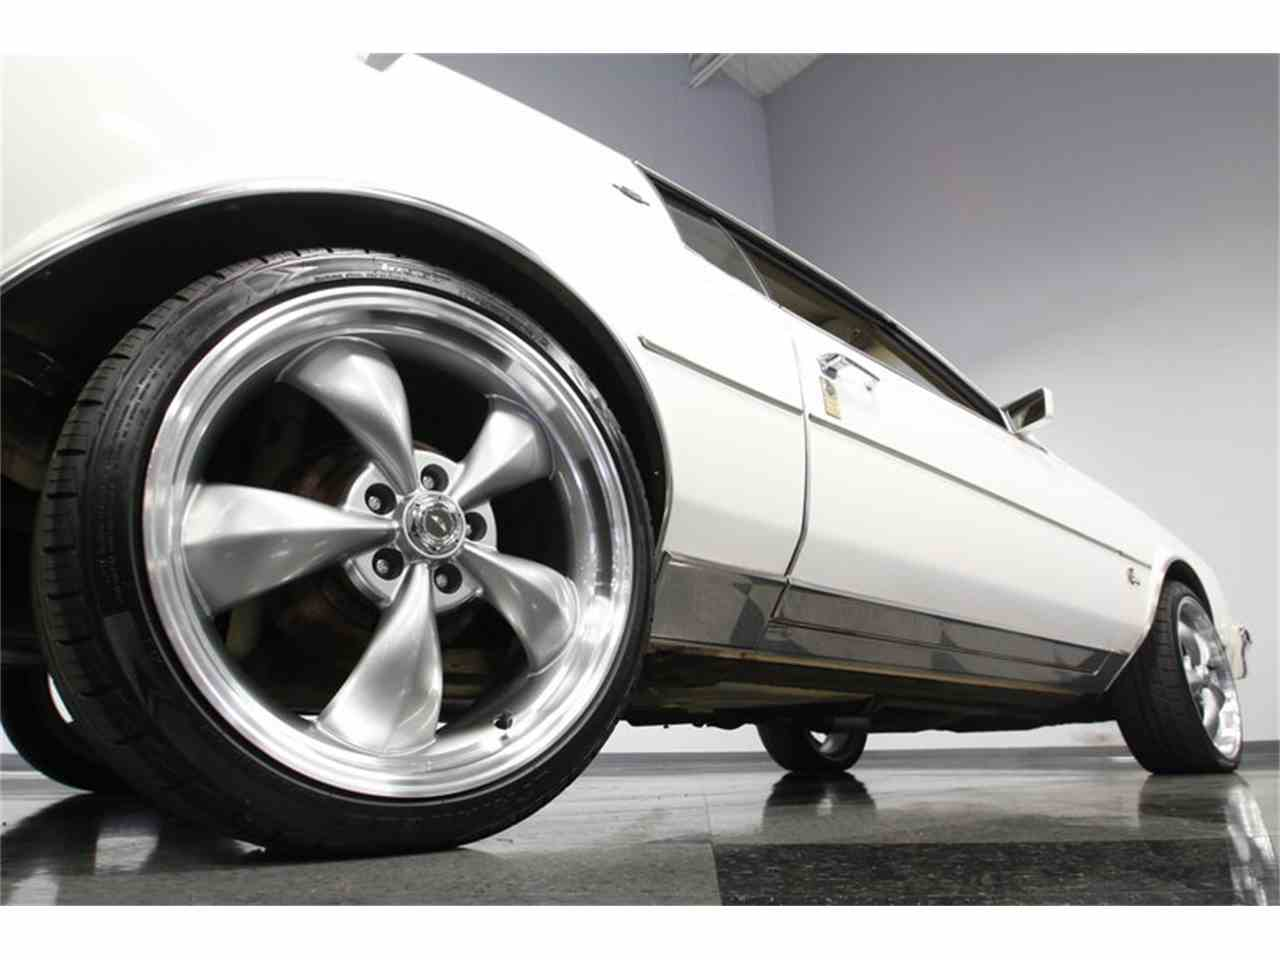 Large Picture of 1985 Buick Riviera located in Concord North Carolina - $8,995.00 Offered by Streetside Classics - Charlotte - MEQO